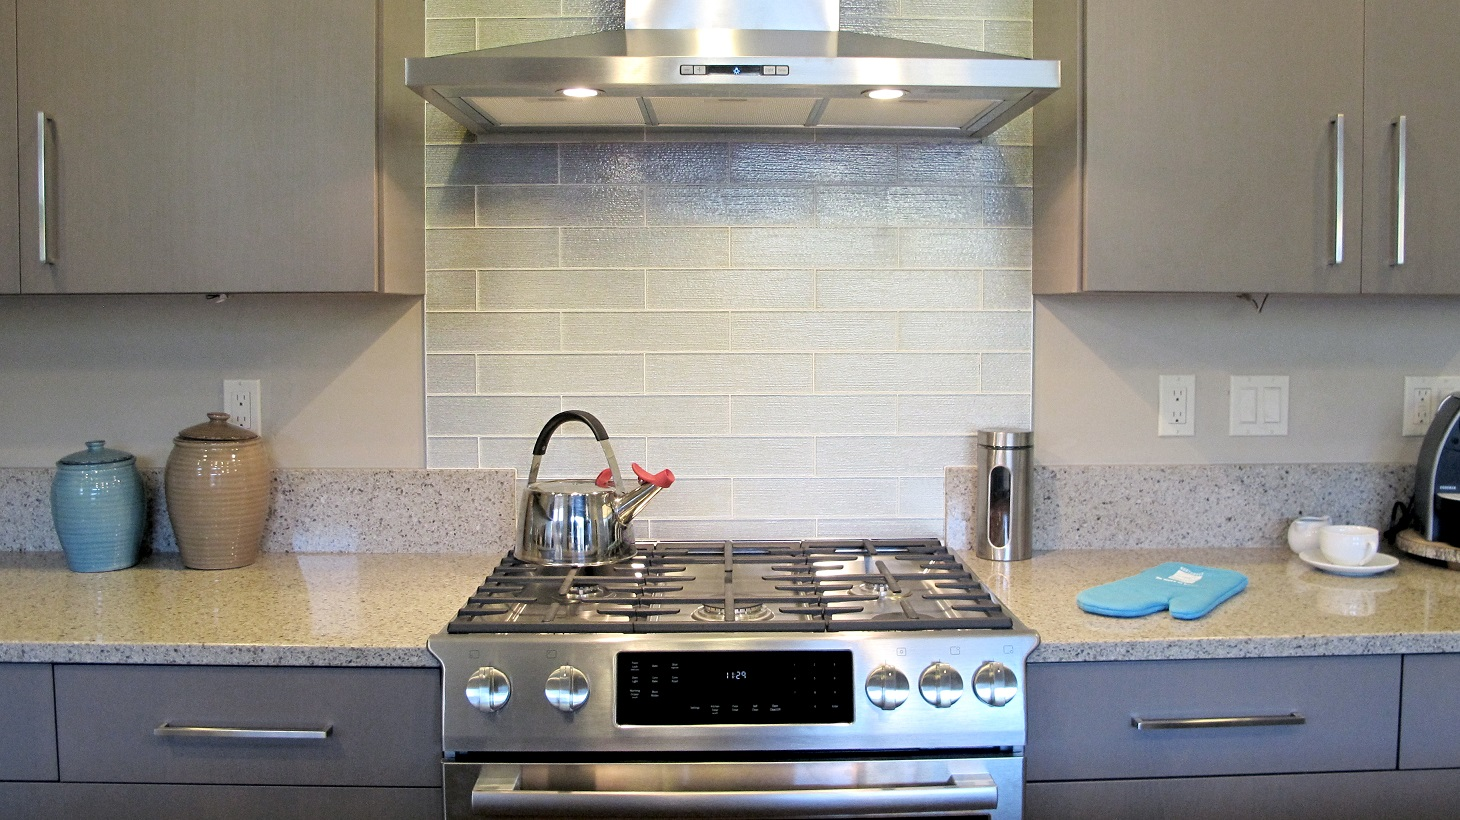 Kitchen back splash glass 3x12 subway stagger white glossy stainless steel range and hood arctic grey cabinets huntwood gas tea kettle quartz lg Viatera